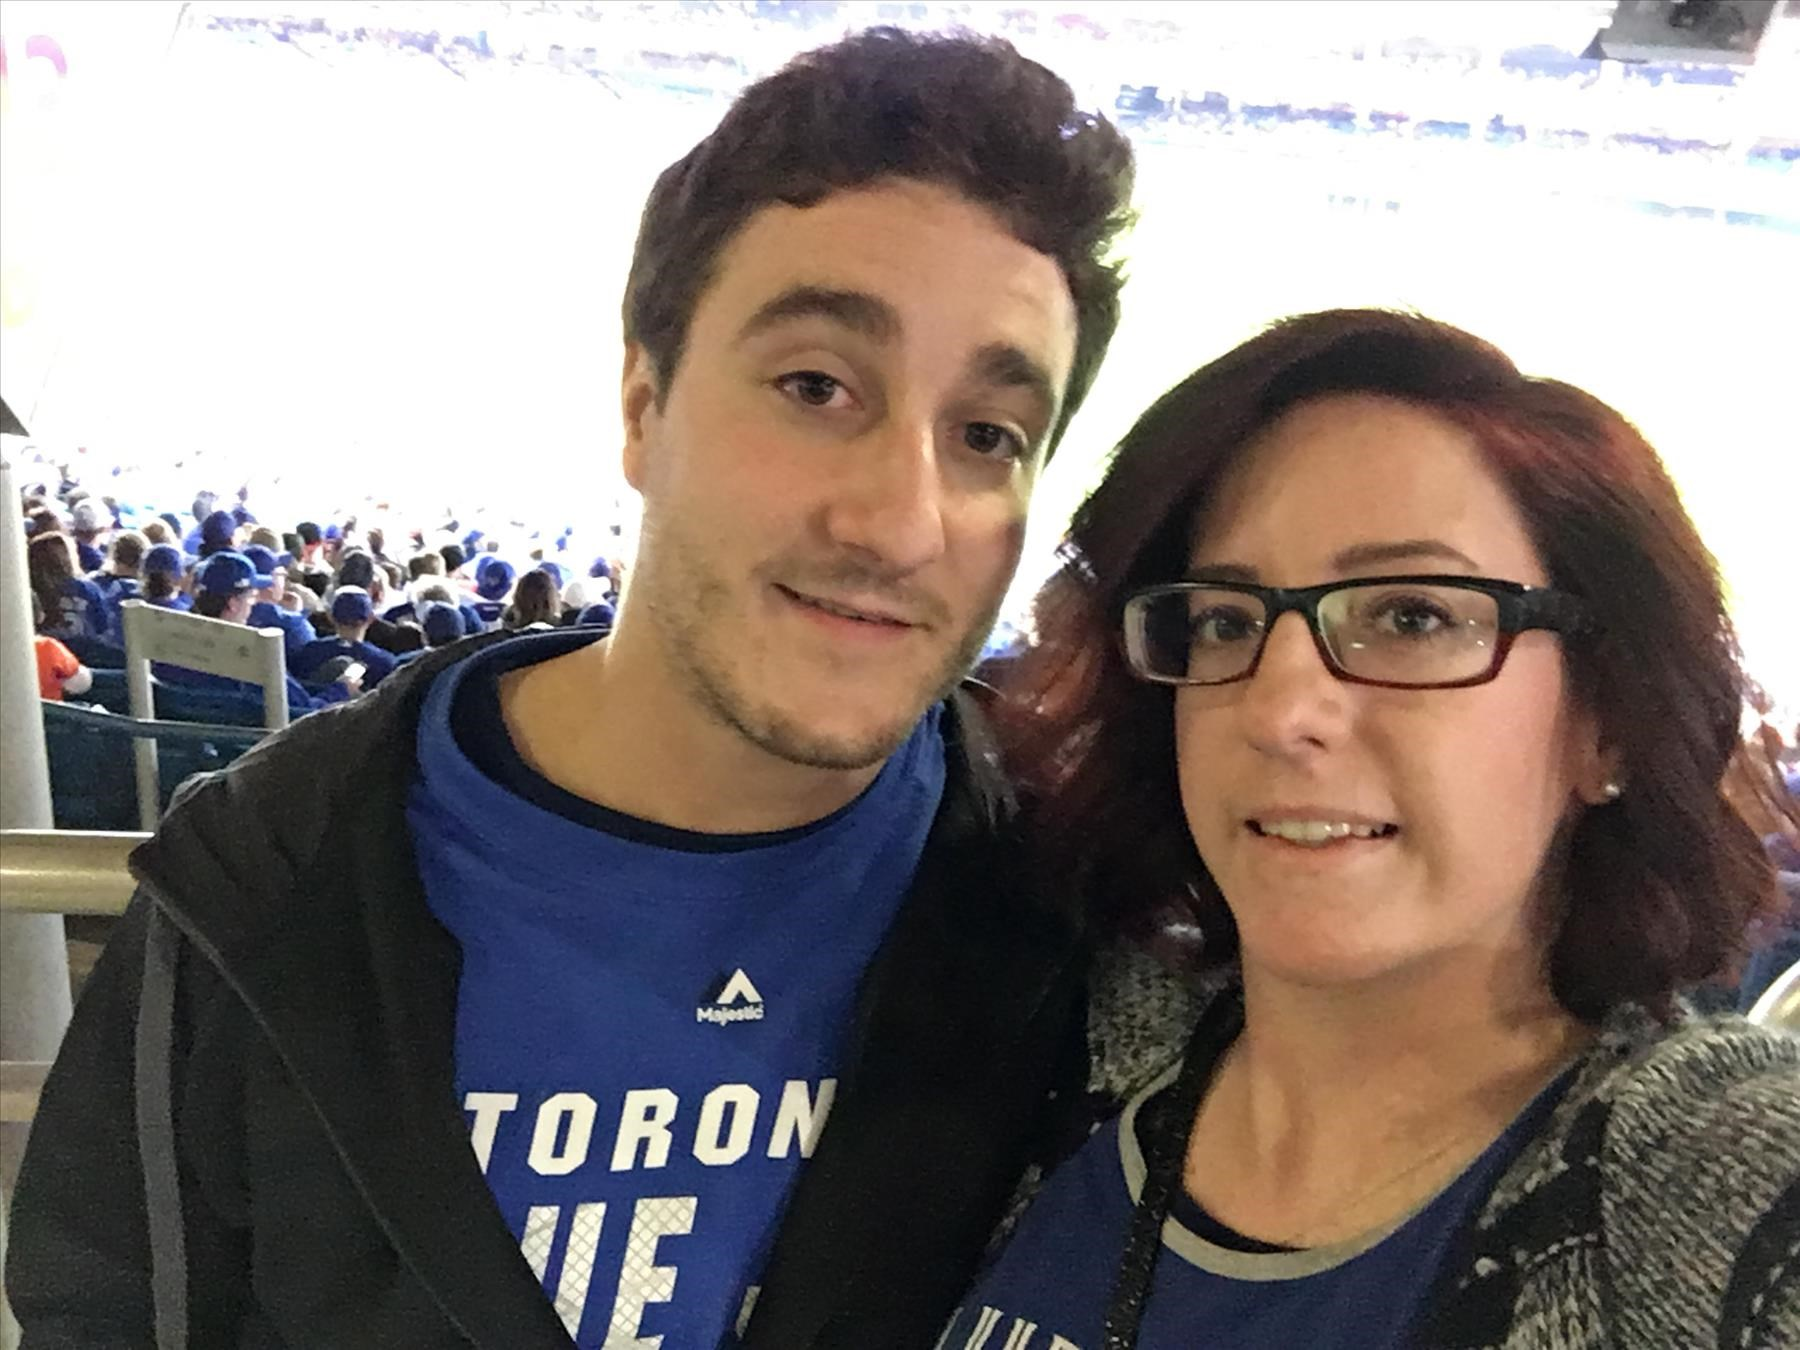 Toronto Blue Jays Tickets vs. Baltimore Orioles at The Rogers Centre